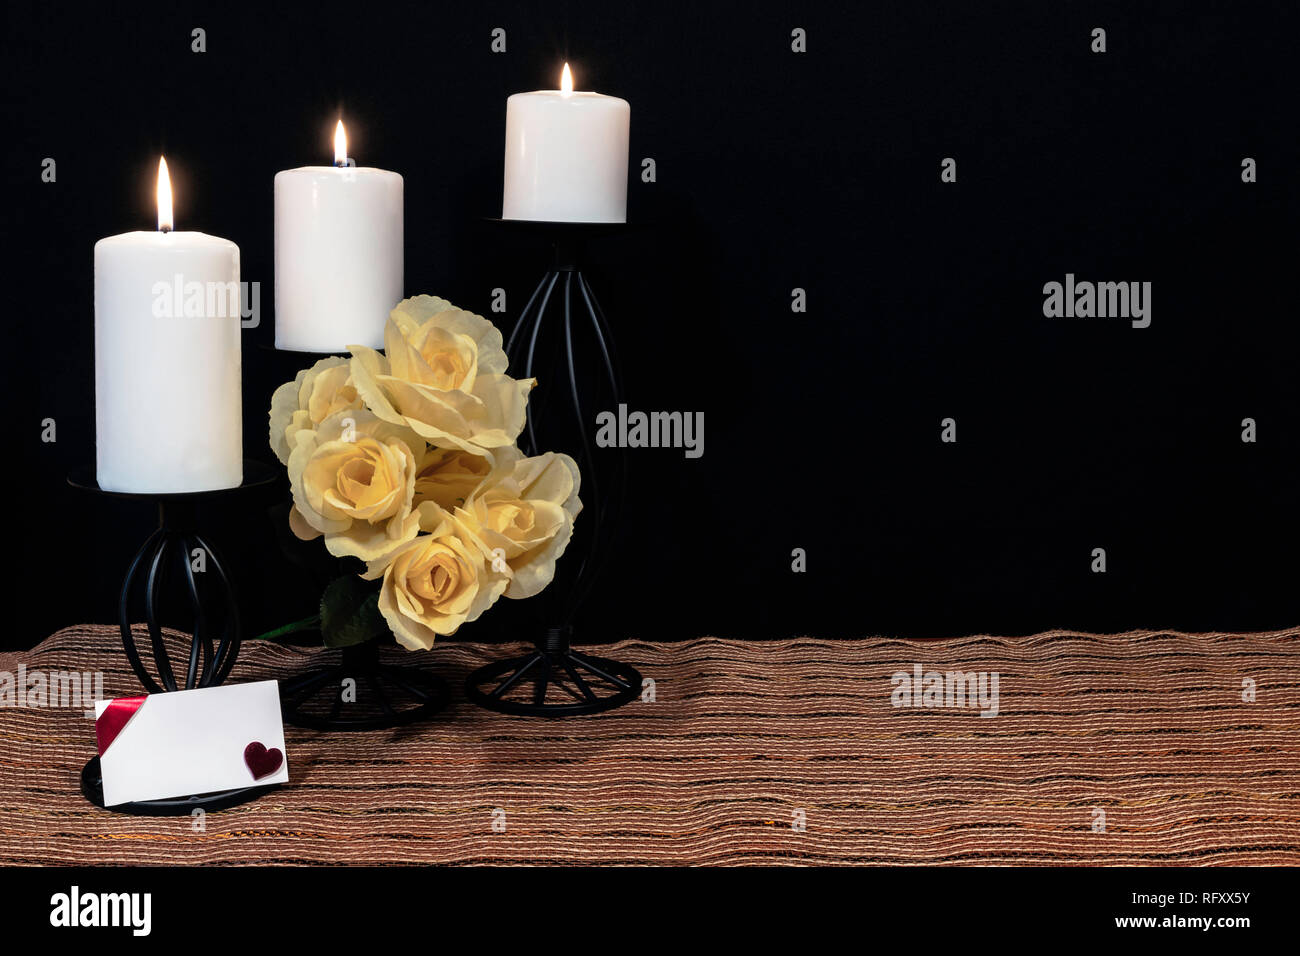 Beautiful bouquie of yellow roses, white candles perched on black candle holders on mesh place mat and wooden table with card and dark background. Val - Stock Image